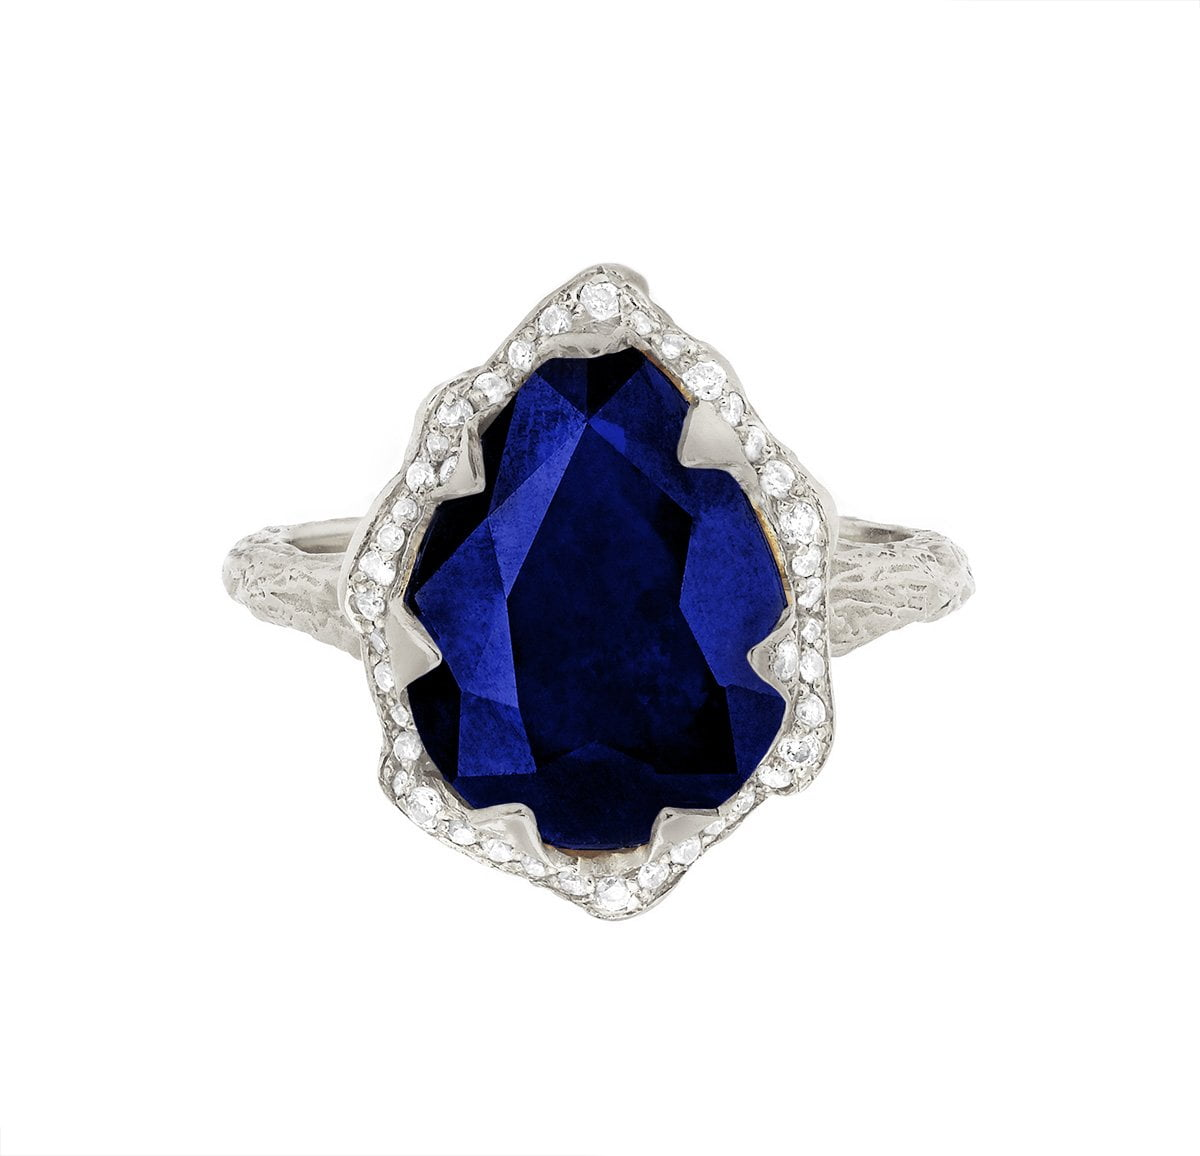 Queen Water Drop Sapphire Ring with Full Pavé Diamond Halo